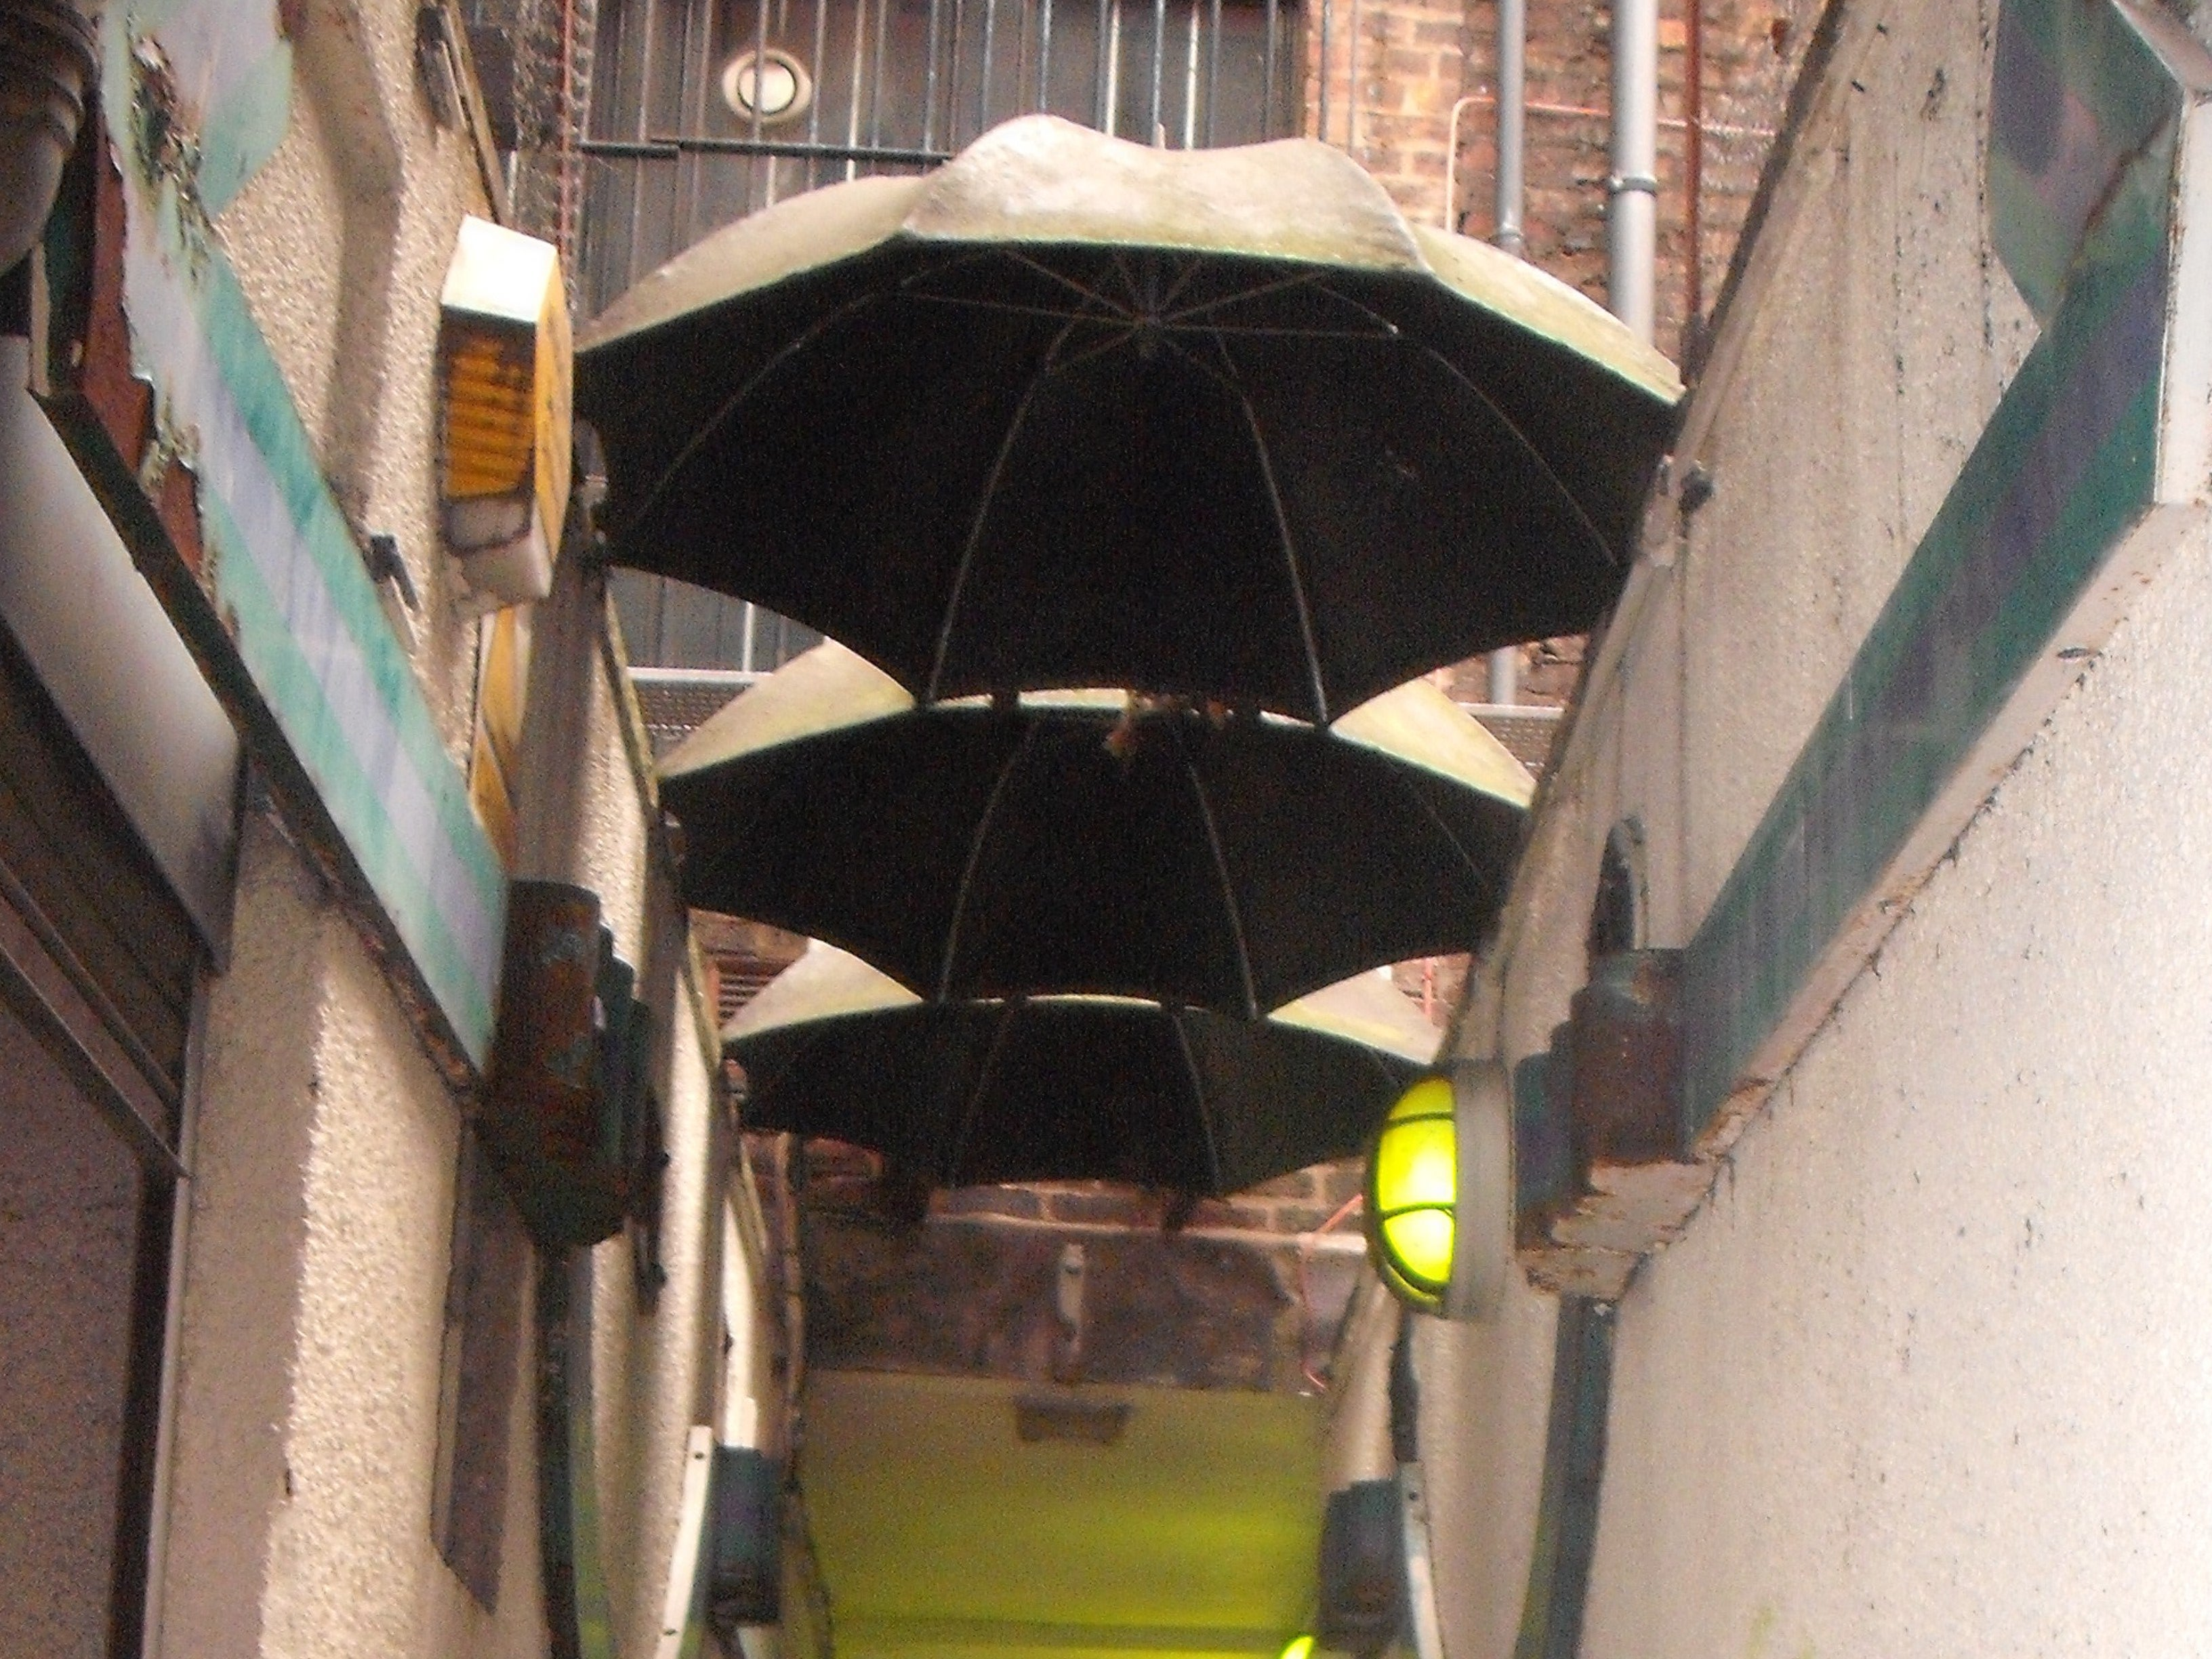 The path to the umbrellas